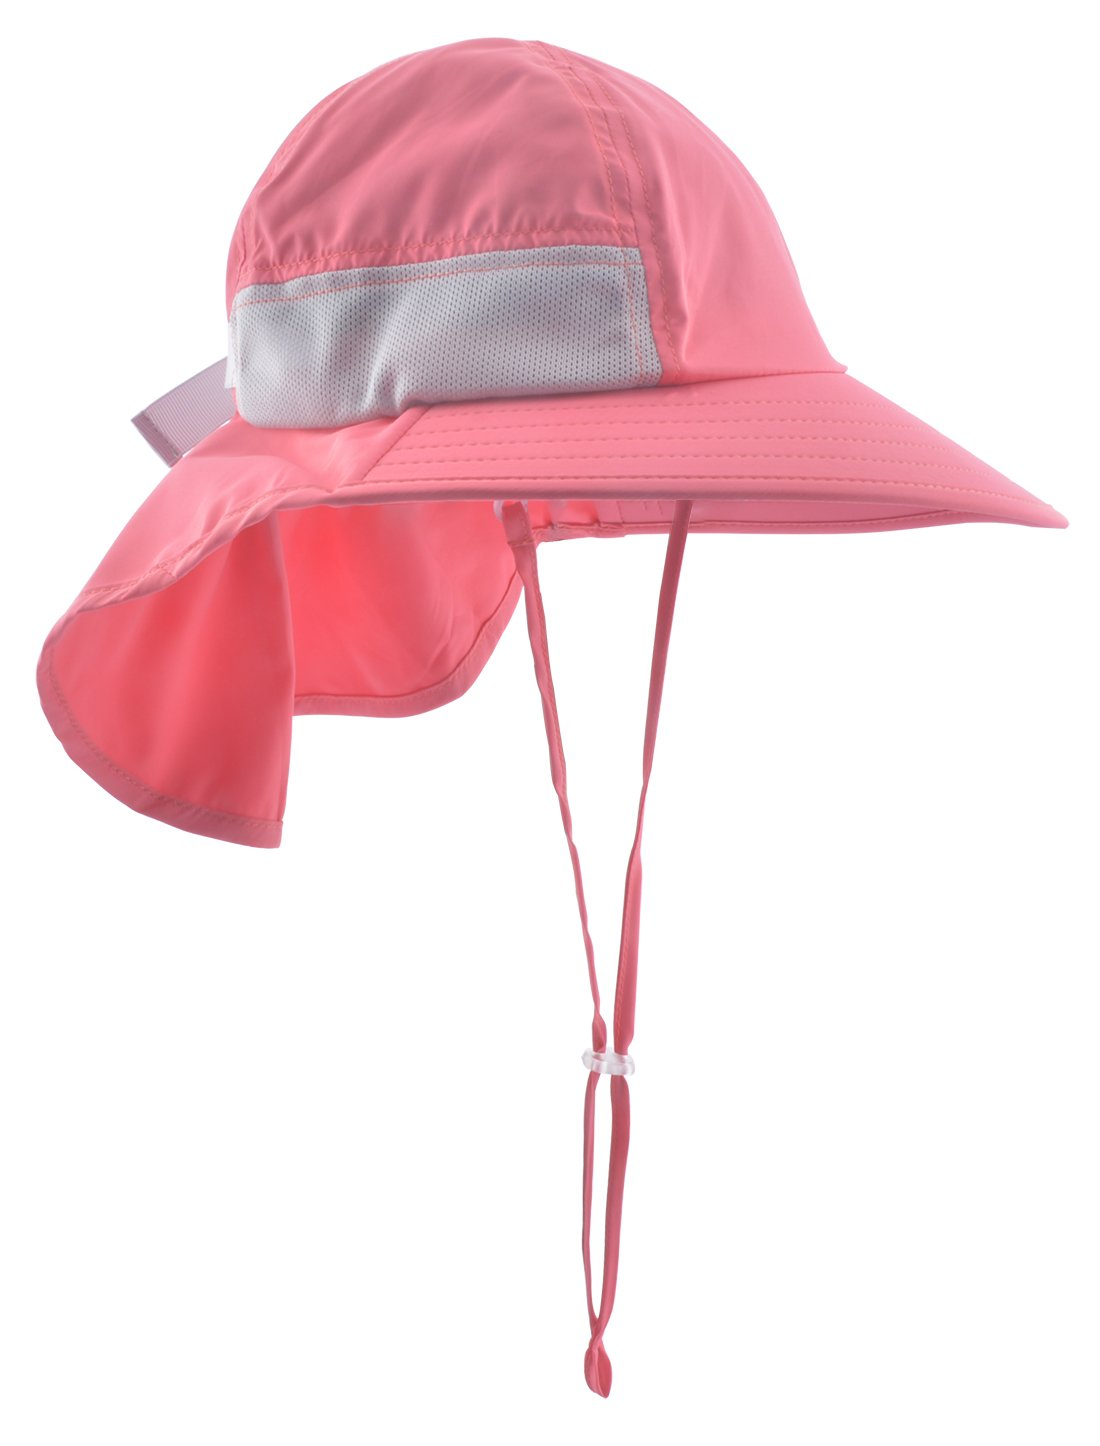 Lenikis Kids Outdoor Activities UV Protecting Sun Hats with Neck Flap Coral Pink